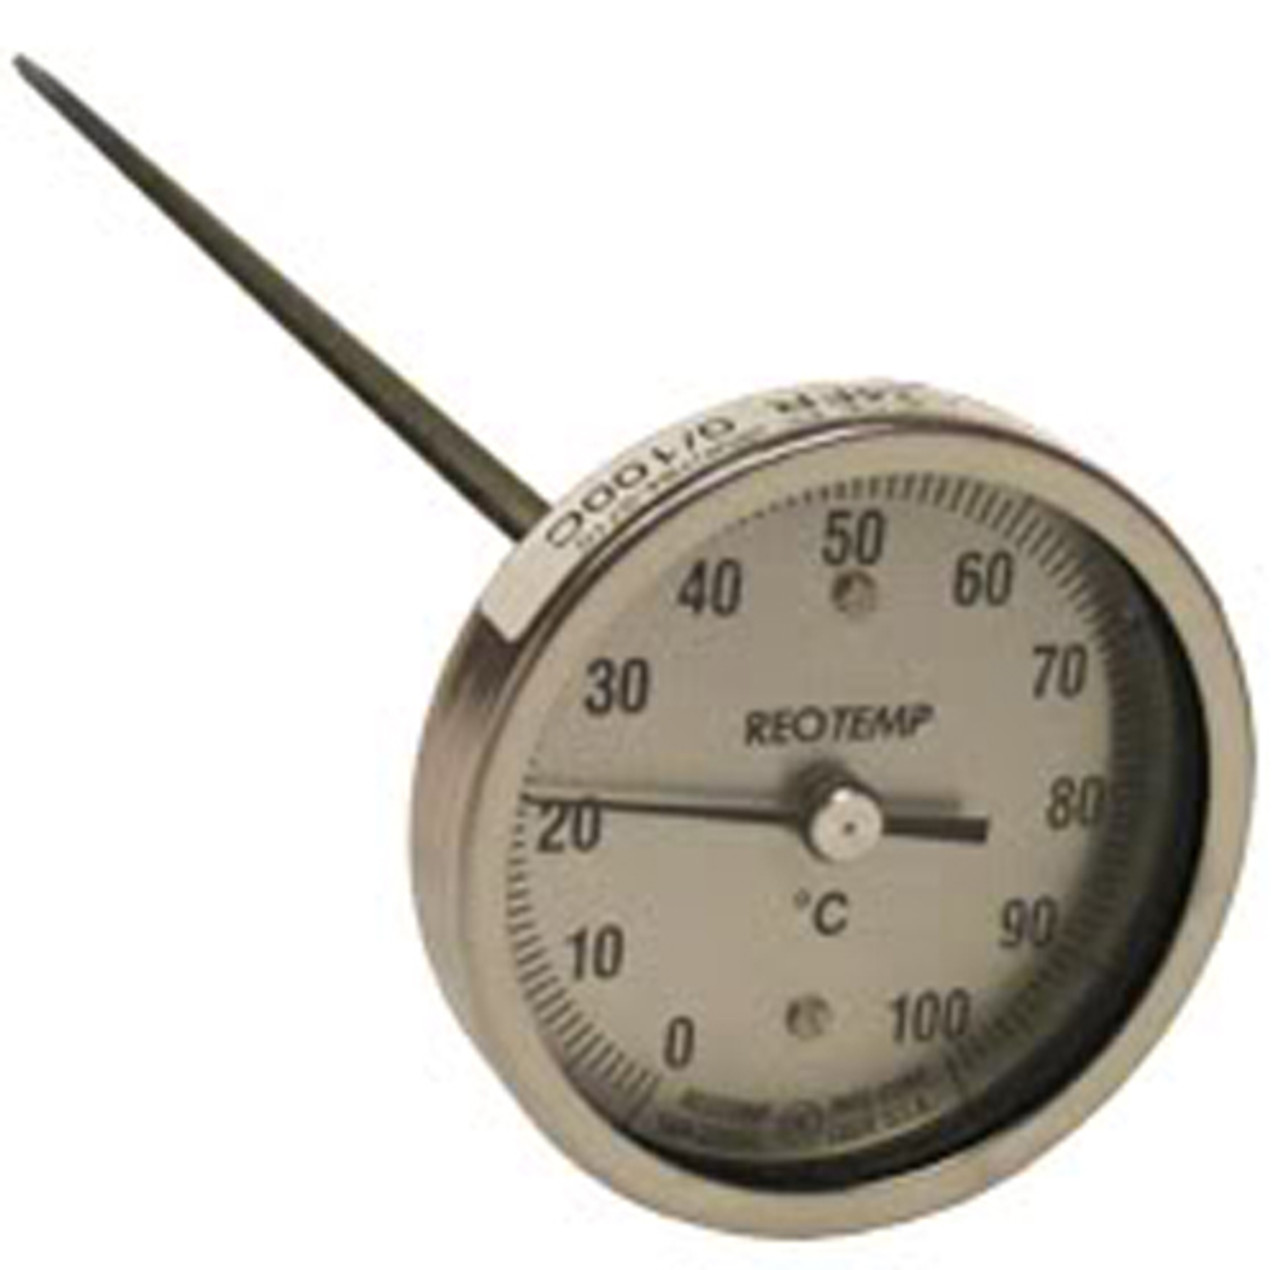 Reotemp compost thermometer Super Duty Fast Response